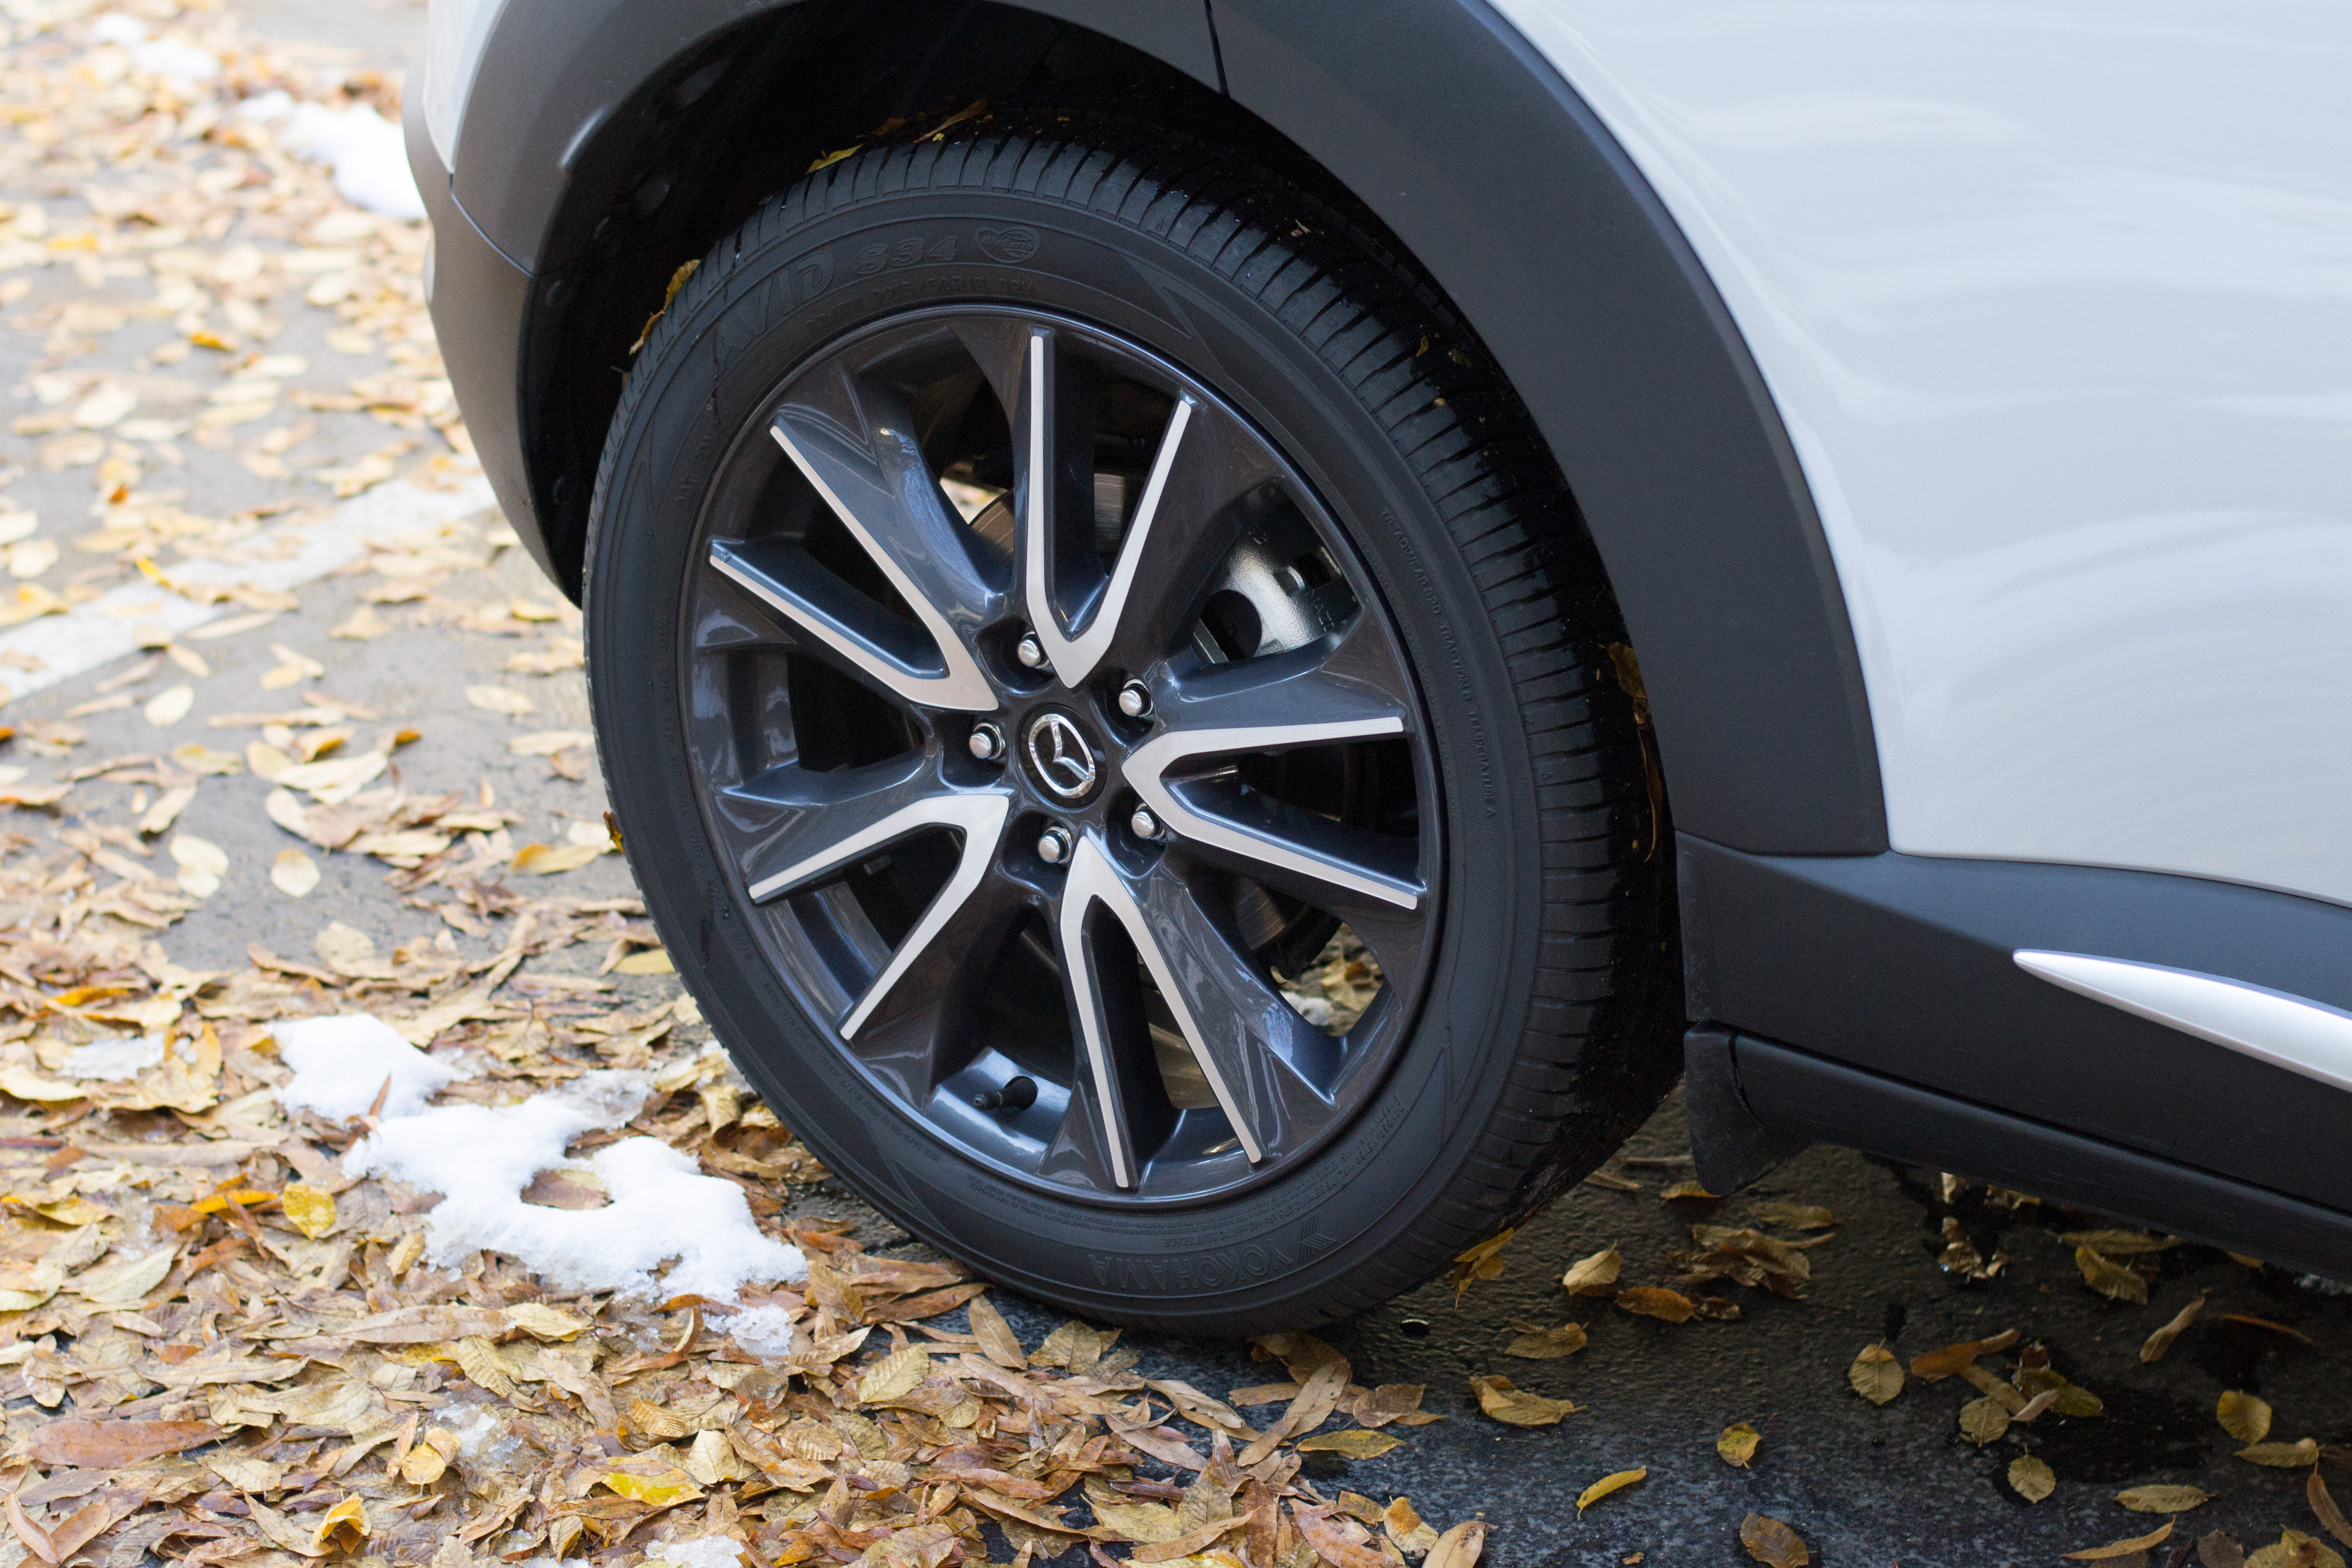 Surviving Winter Travel on the Road with the Mazda CX-3